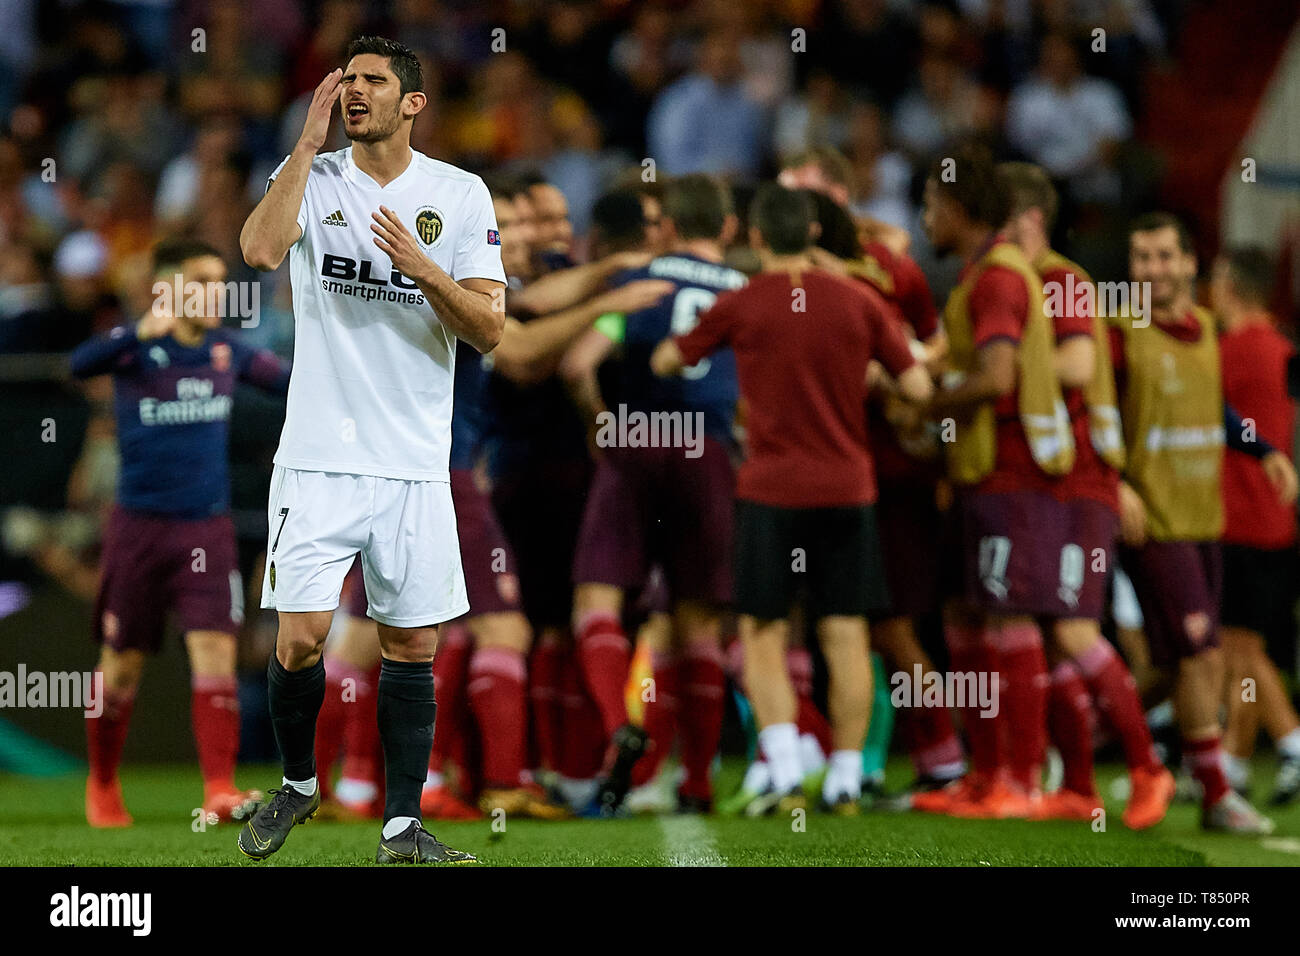 VALENCIA, SPAIN - MAY 09: Goncalo Guedes of Valencia CF reacts after Arsenal's second goal during the UEFA Europa League Semi Final Second Leg match between Valencia and Arsenal at Estadio Mestalla on May 9, 2019 in Valencia, Spain. (Photo by David Aliaga/MB Media) - Stock Image